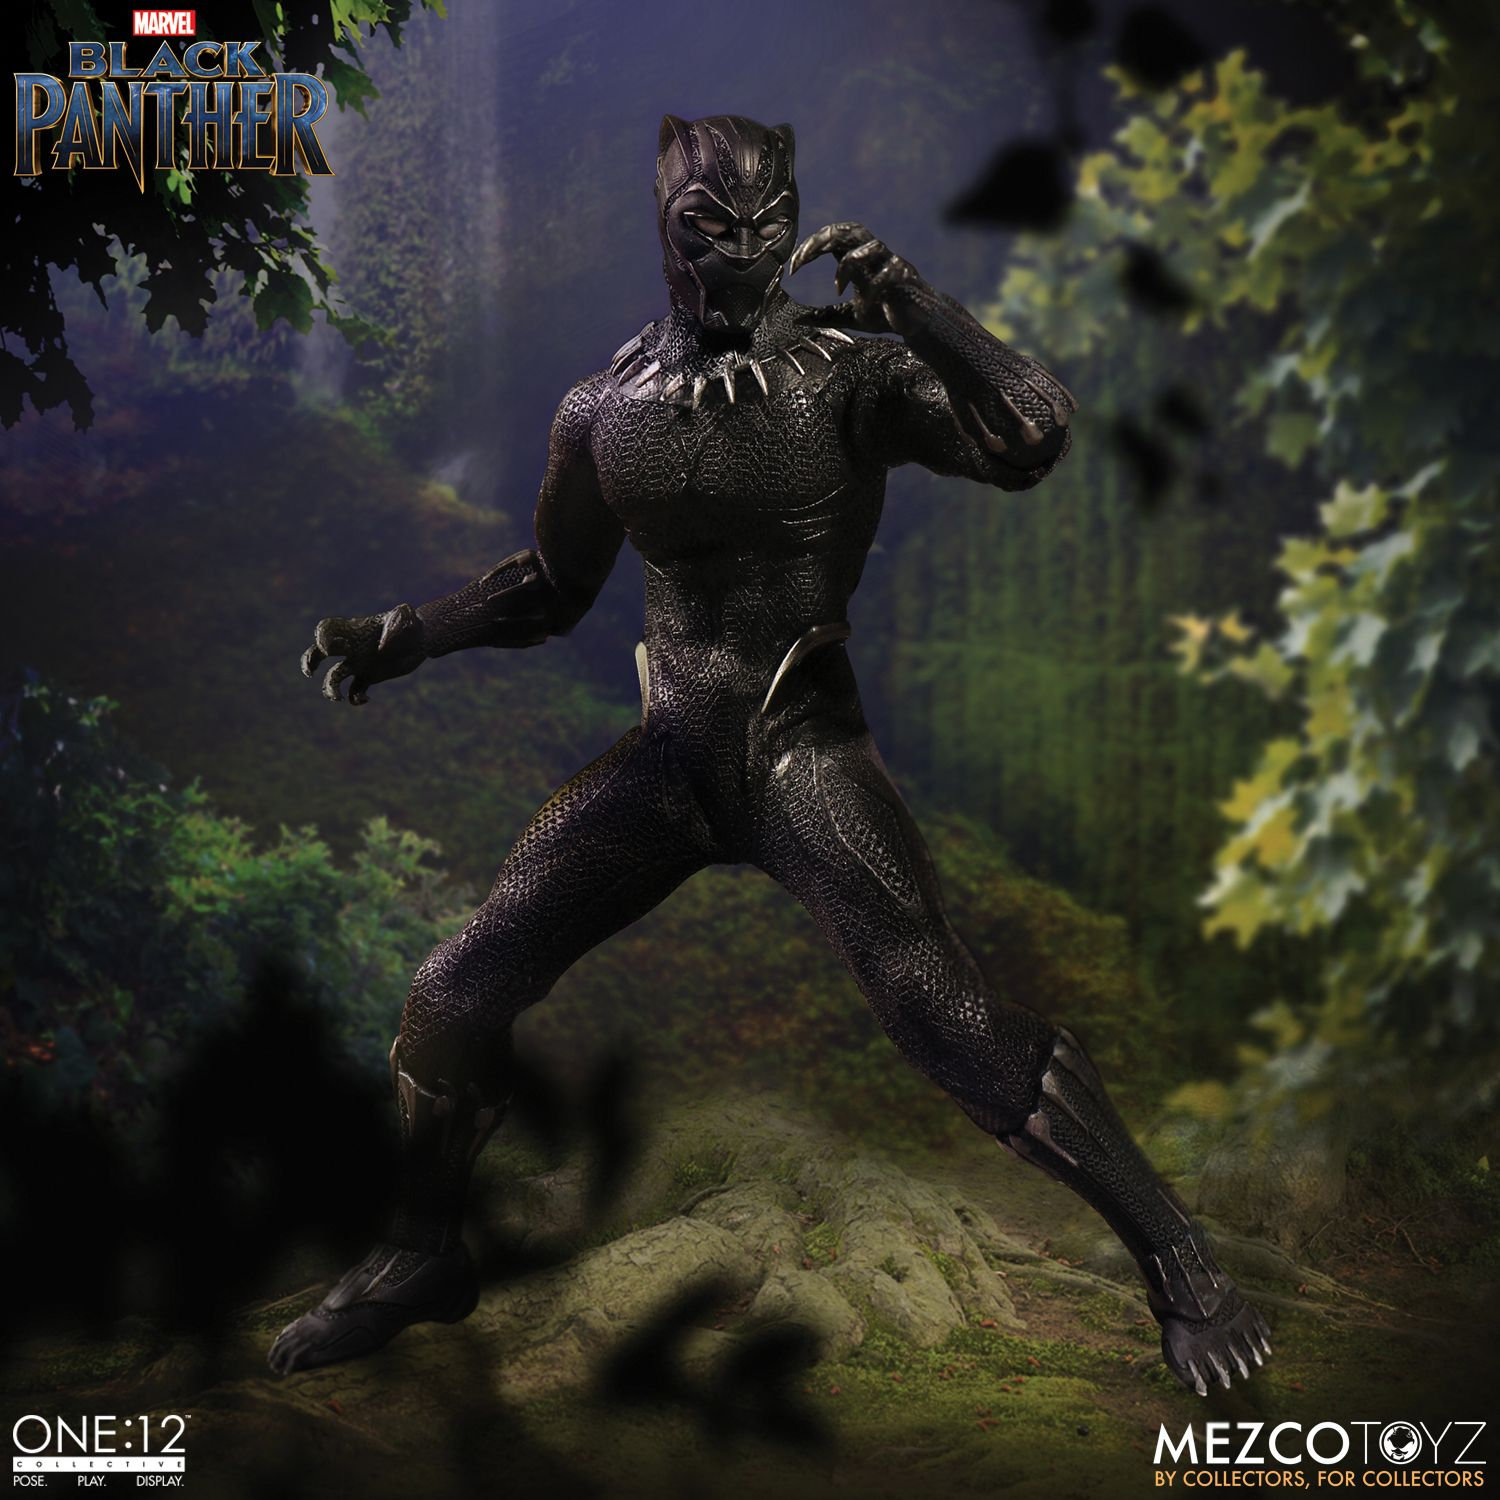 black panther mezco one 12 figure 4